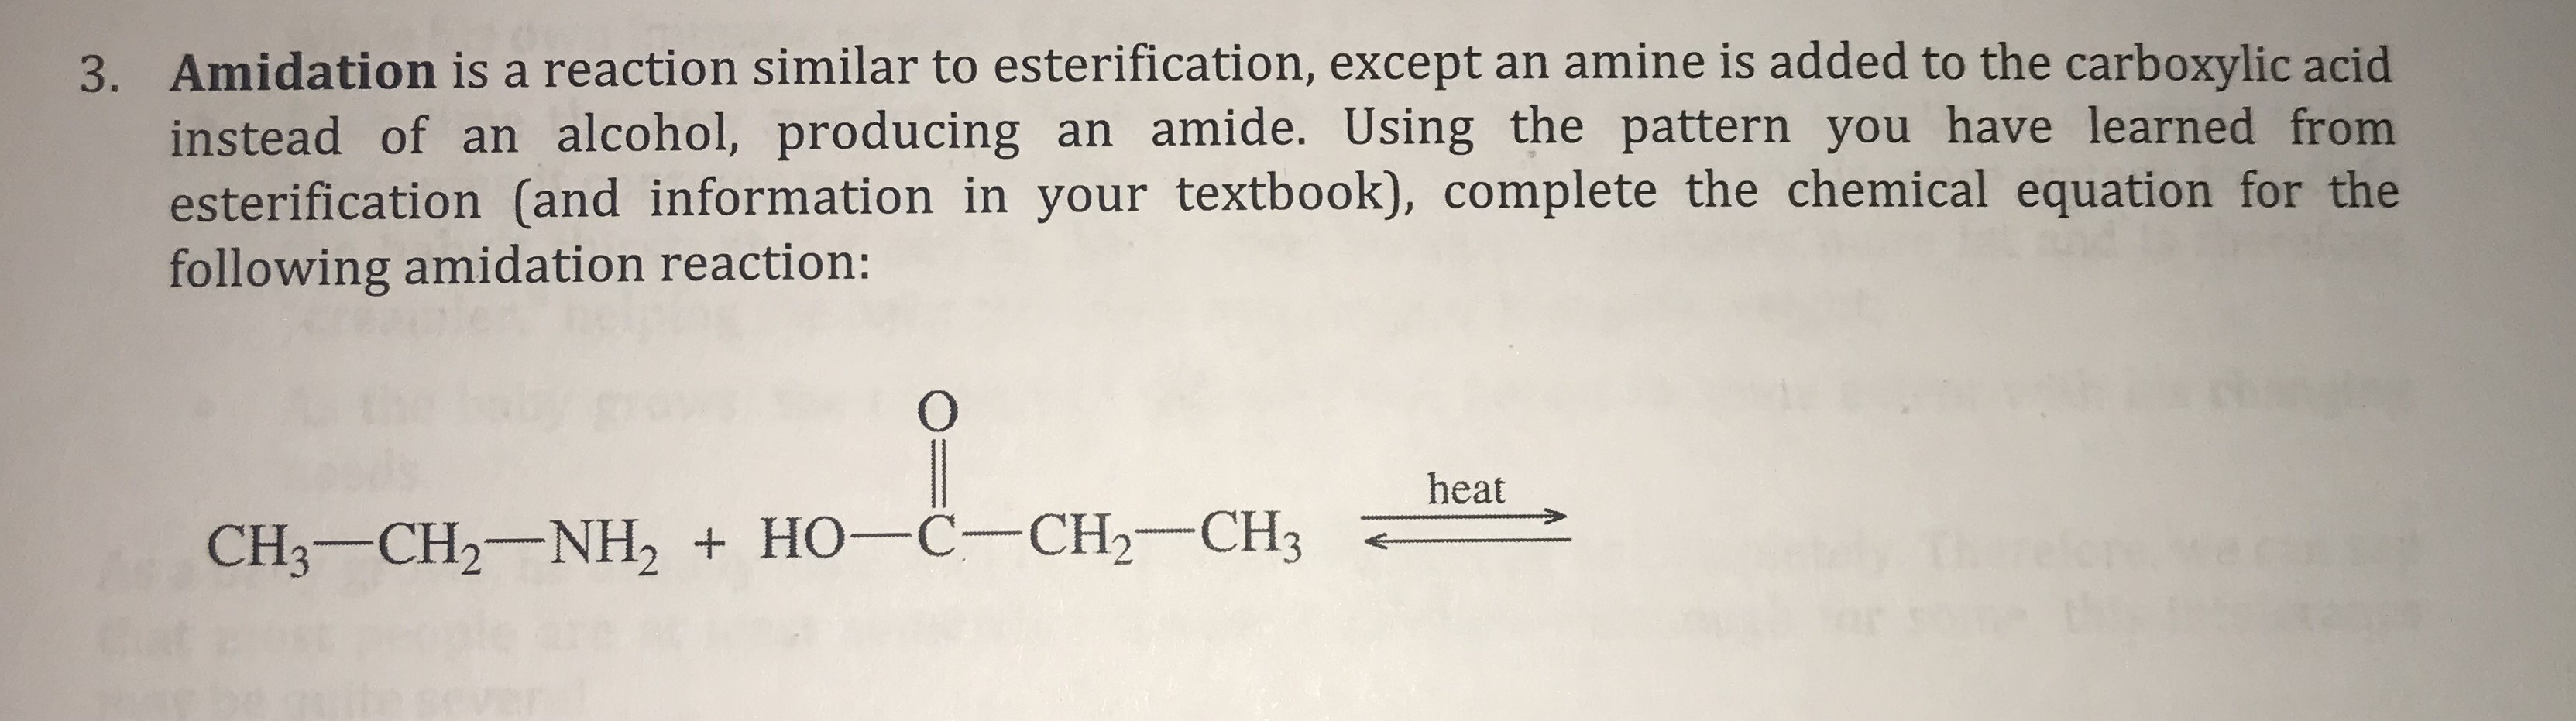 3. Amidation is a reaction similar to esterification, except an amine is added to the carboxylic acid instead of an alcohol, producing an amide. Using the pattern you have learned from esterification (and information in your textbook), complete the chemical equation for the following amidation reaction: O heat CH3 CH2 NH2 HO-C- CH2- CH3